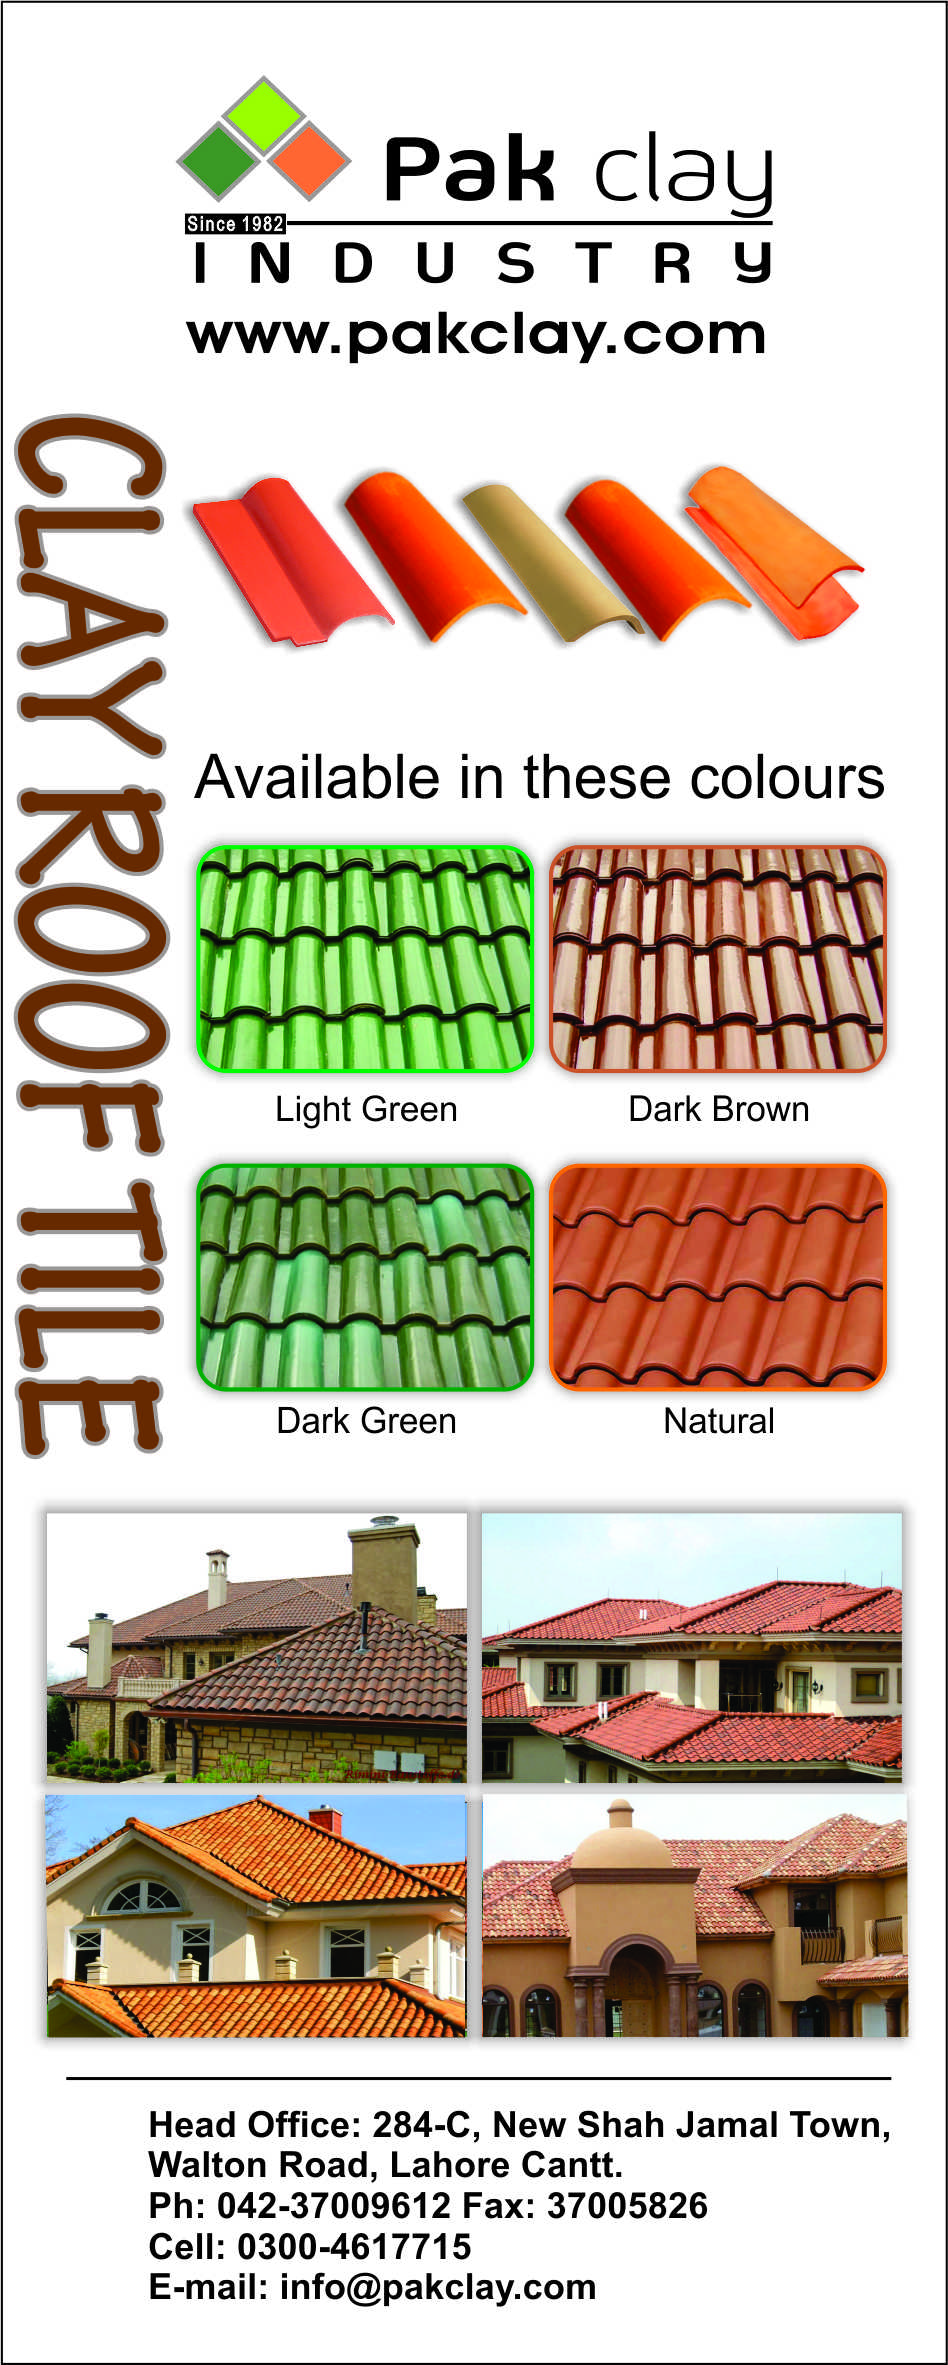 1 Pak clay a 1 quality khaprail tiles in pakistan ceramic roof tiles terracotta roof tiles types and prices images